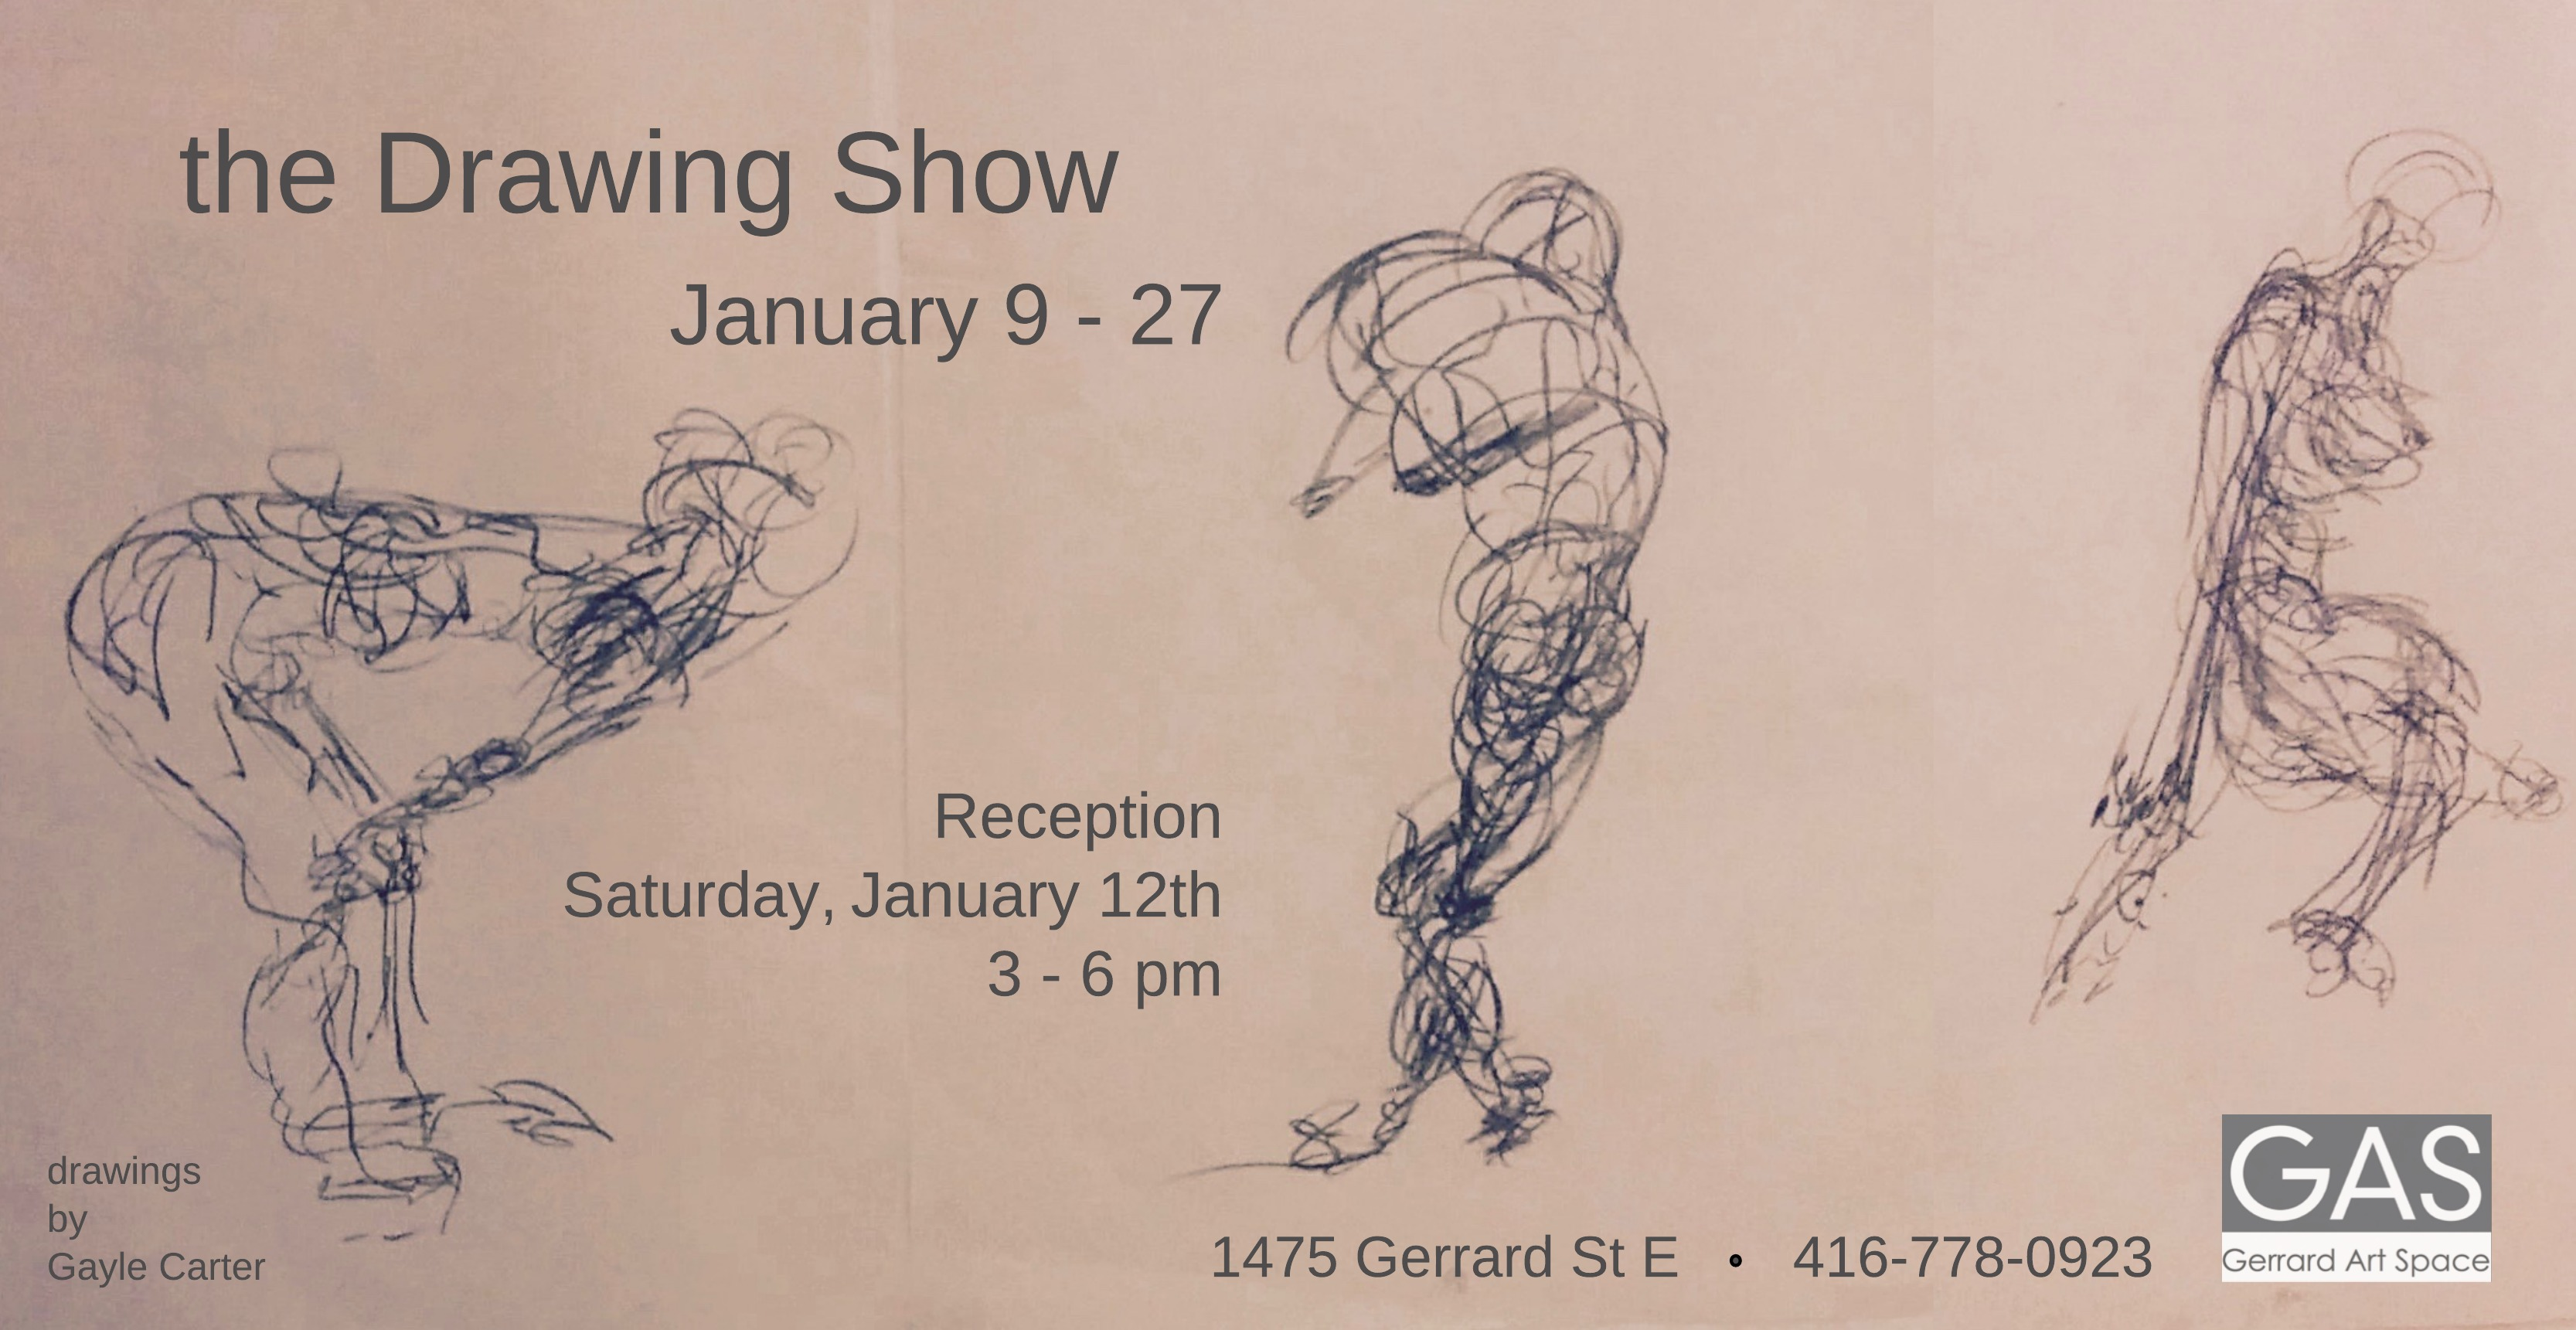 The Drawing Show 2019